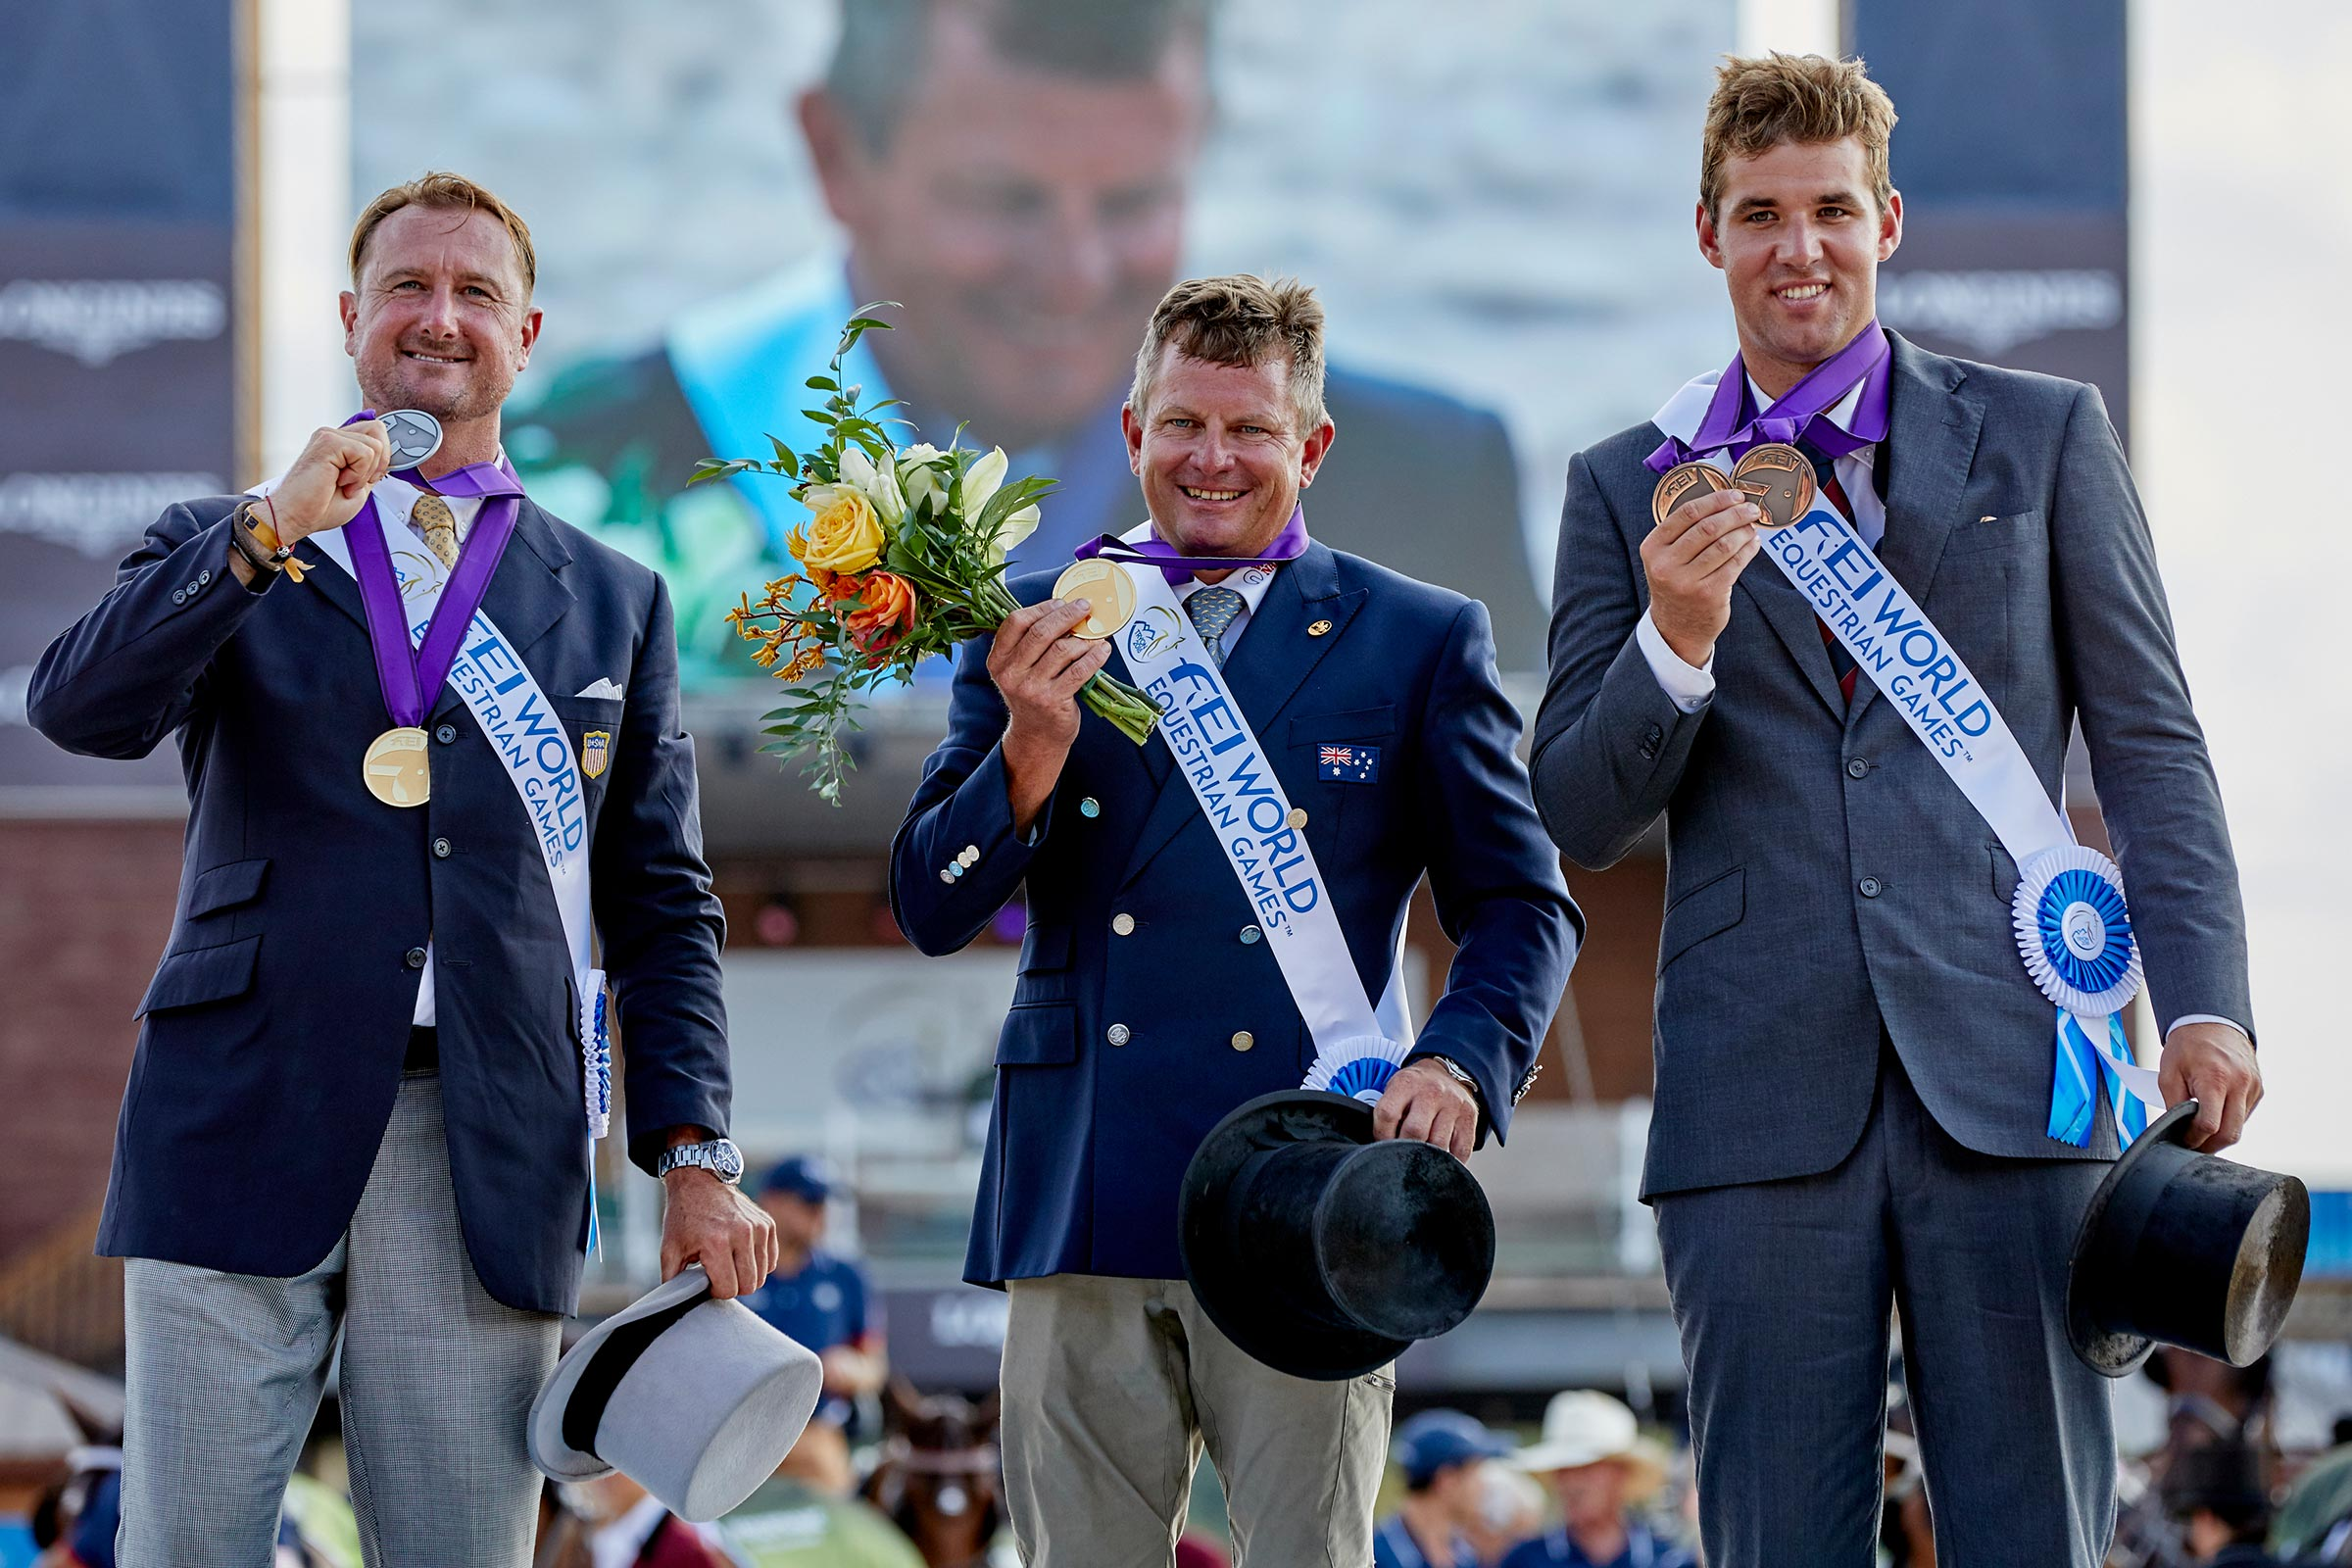 FEI World Equestrian Games™ Tryon USA FEI World Equestrian Games™ Tryon USA Driving Individual Podium Chester Weber Boyd Exell Edouard Simonet Photo FEI/Liz Gregg